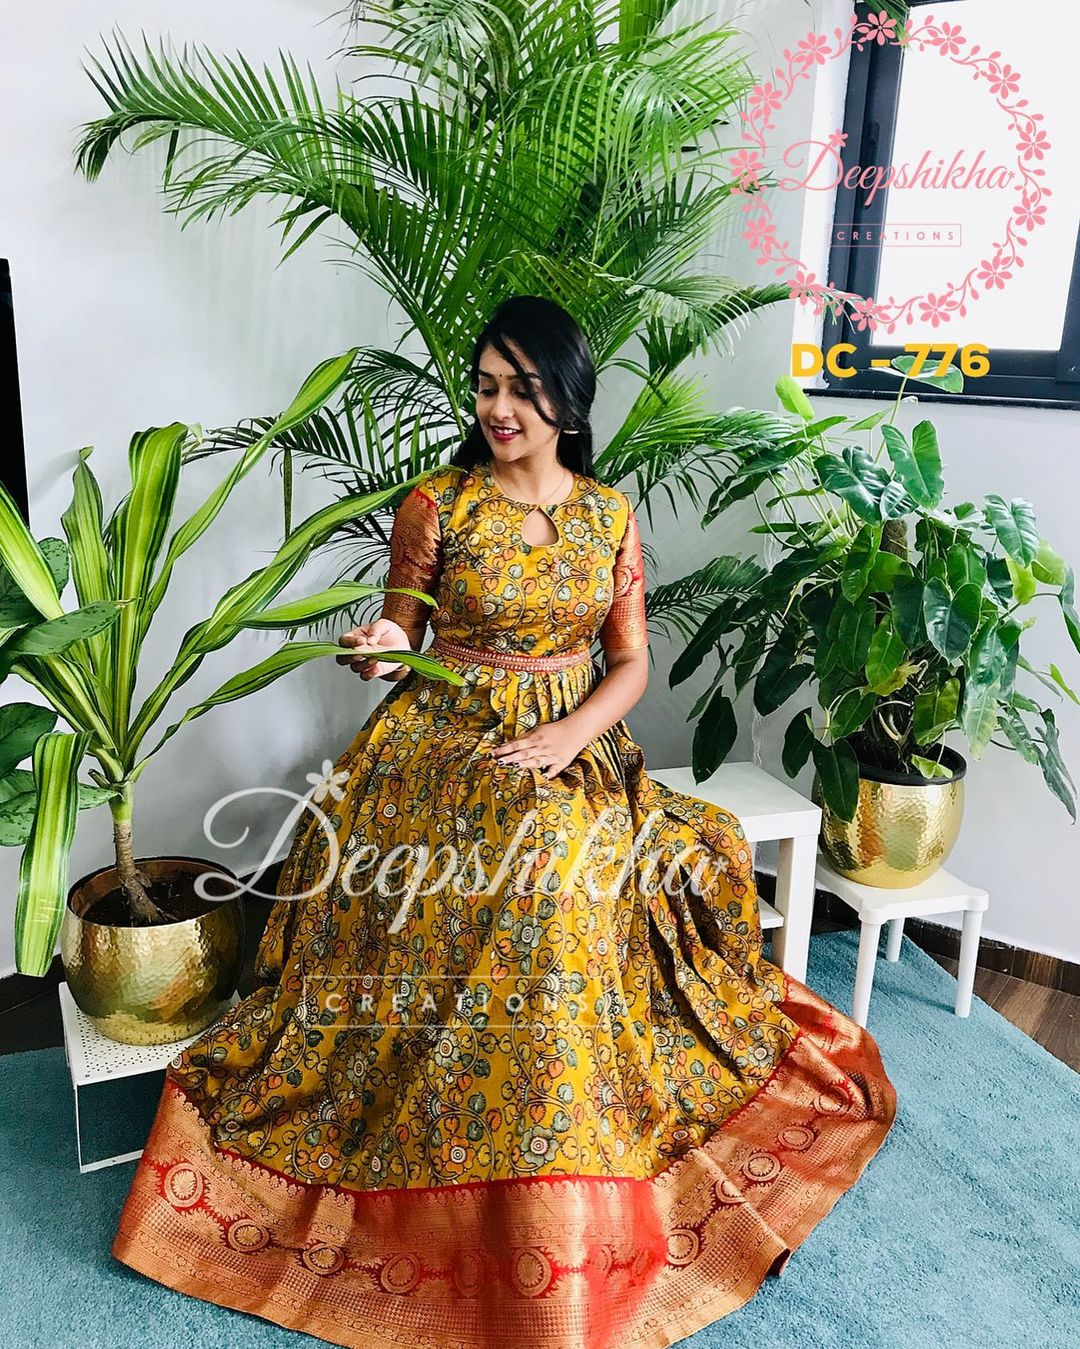 Gorgeous mustard yellow color kalamkari print pattu long frock. DC - 776 For queries kindly whatsapp: +91 9059683293. They don't have any resellers or branches. 2021-09-20